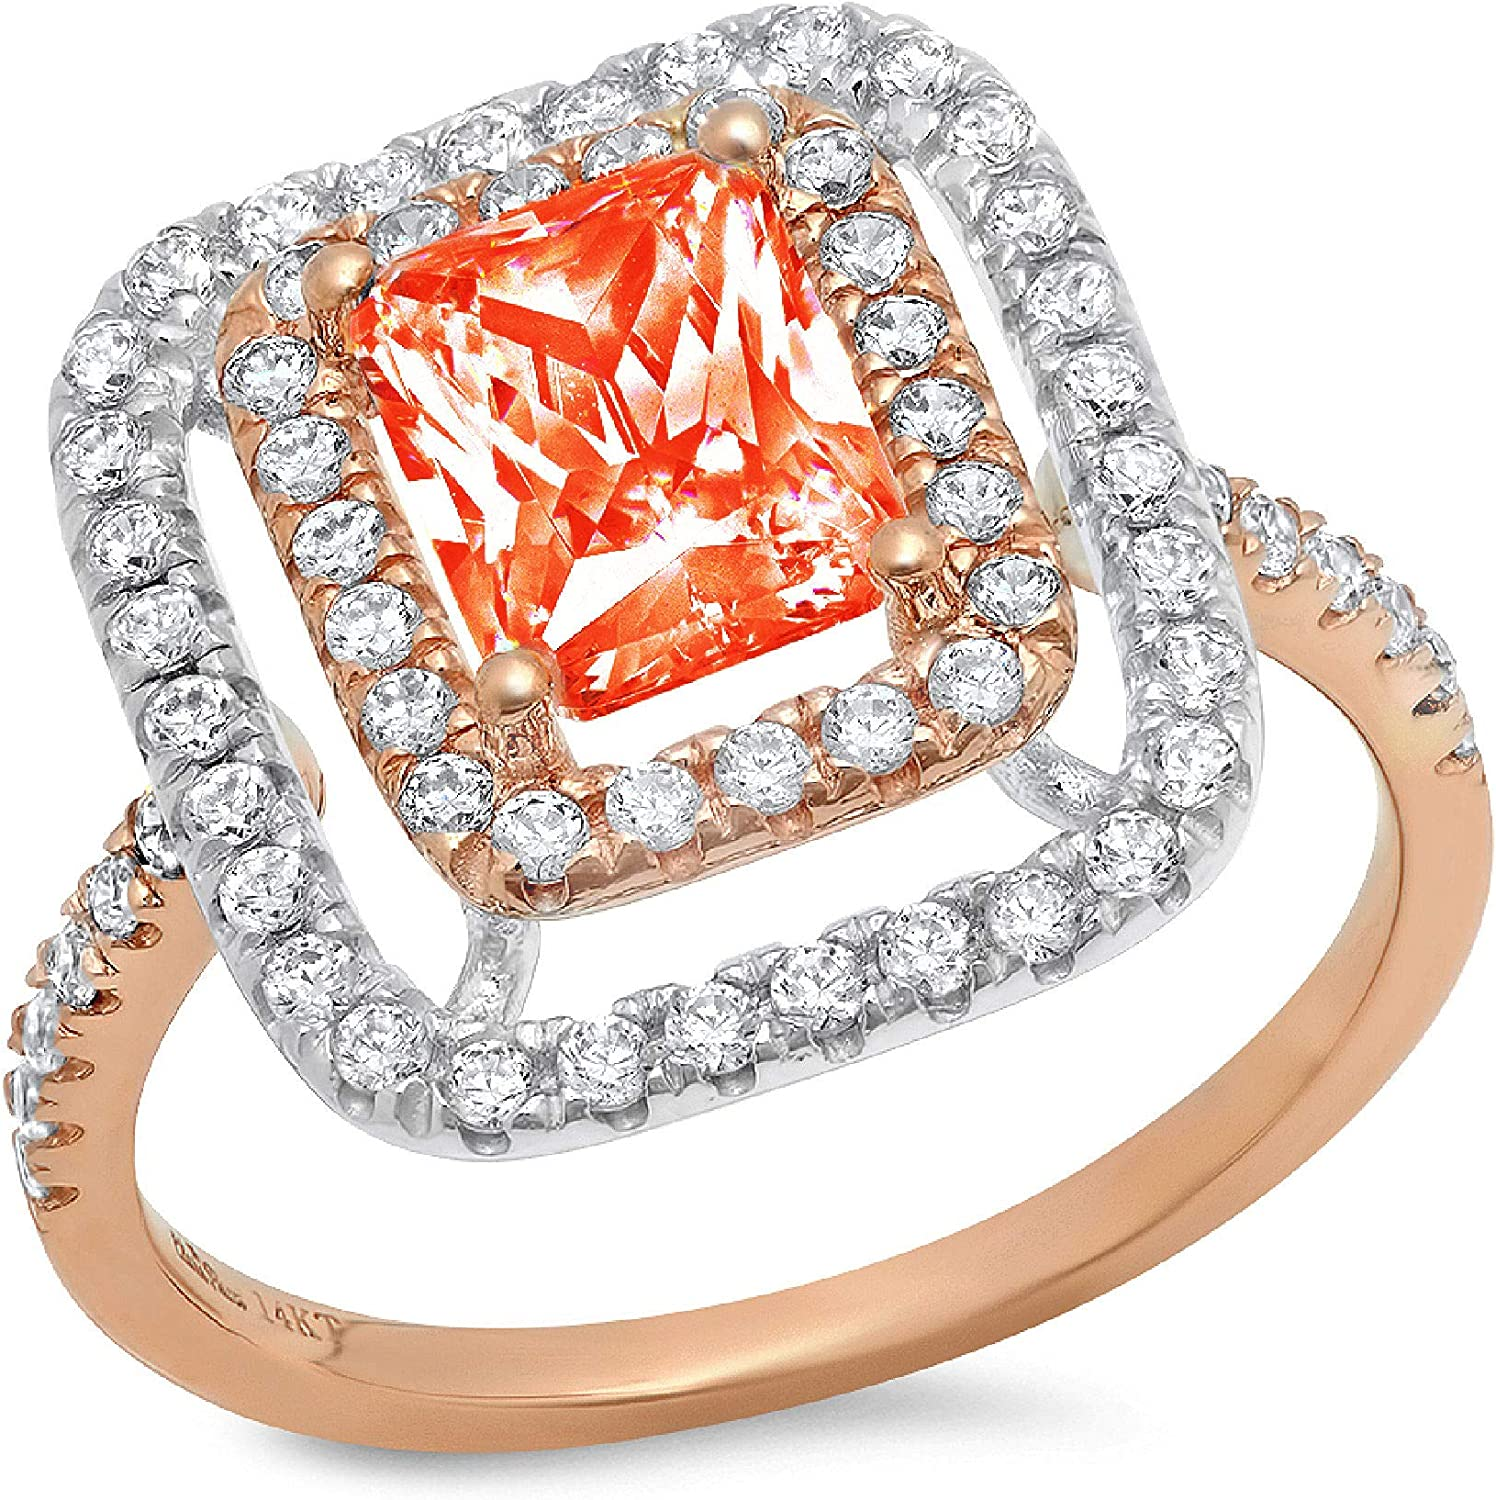 2.66 ct Emerald Cut Double Halo Solitaire with Accent Red Simulated Diamond Ideal VVS1 Engagement Promise Statement Anniversary Bridal Wedding Ring 14k 2 tone Gold